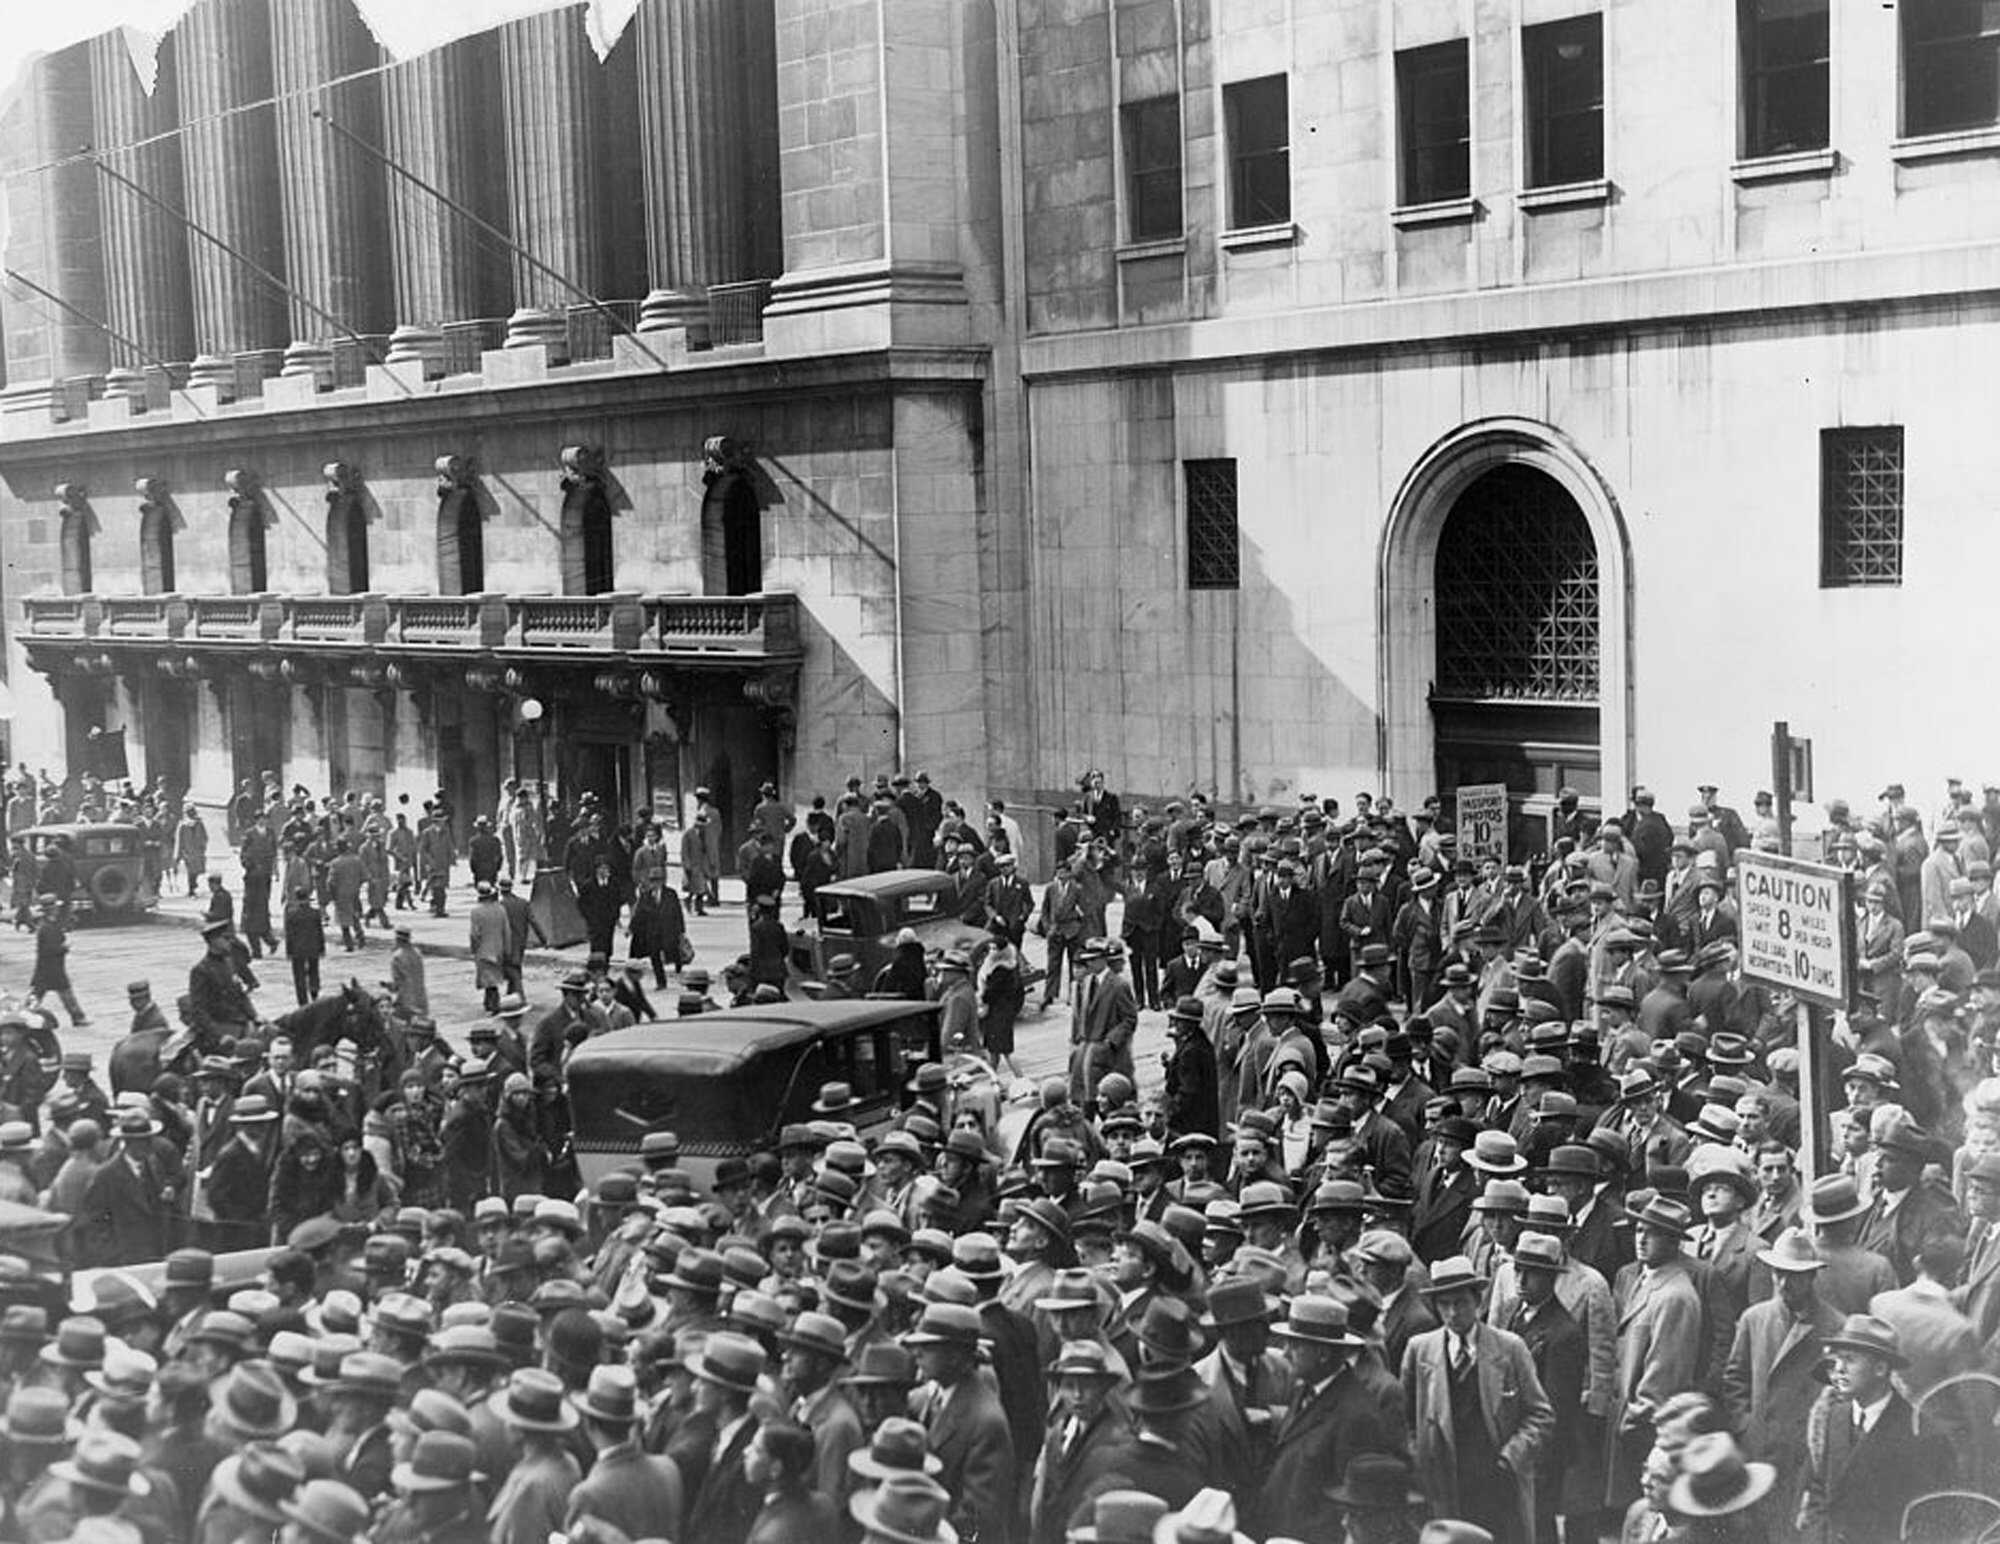 Crash-1929-Headlines-Crowd-of-people-gather-outside-the-New-York-Stock-Exchange-following-the-Crash-of-1929-LOC.jpg